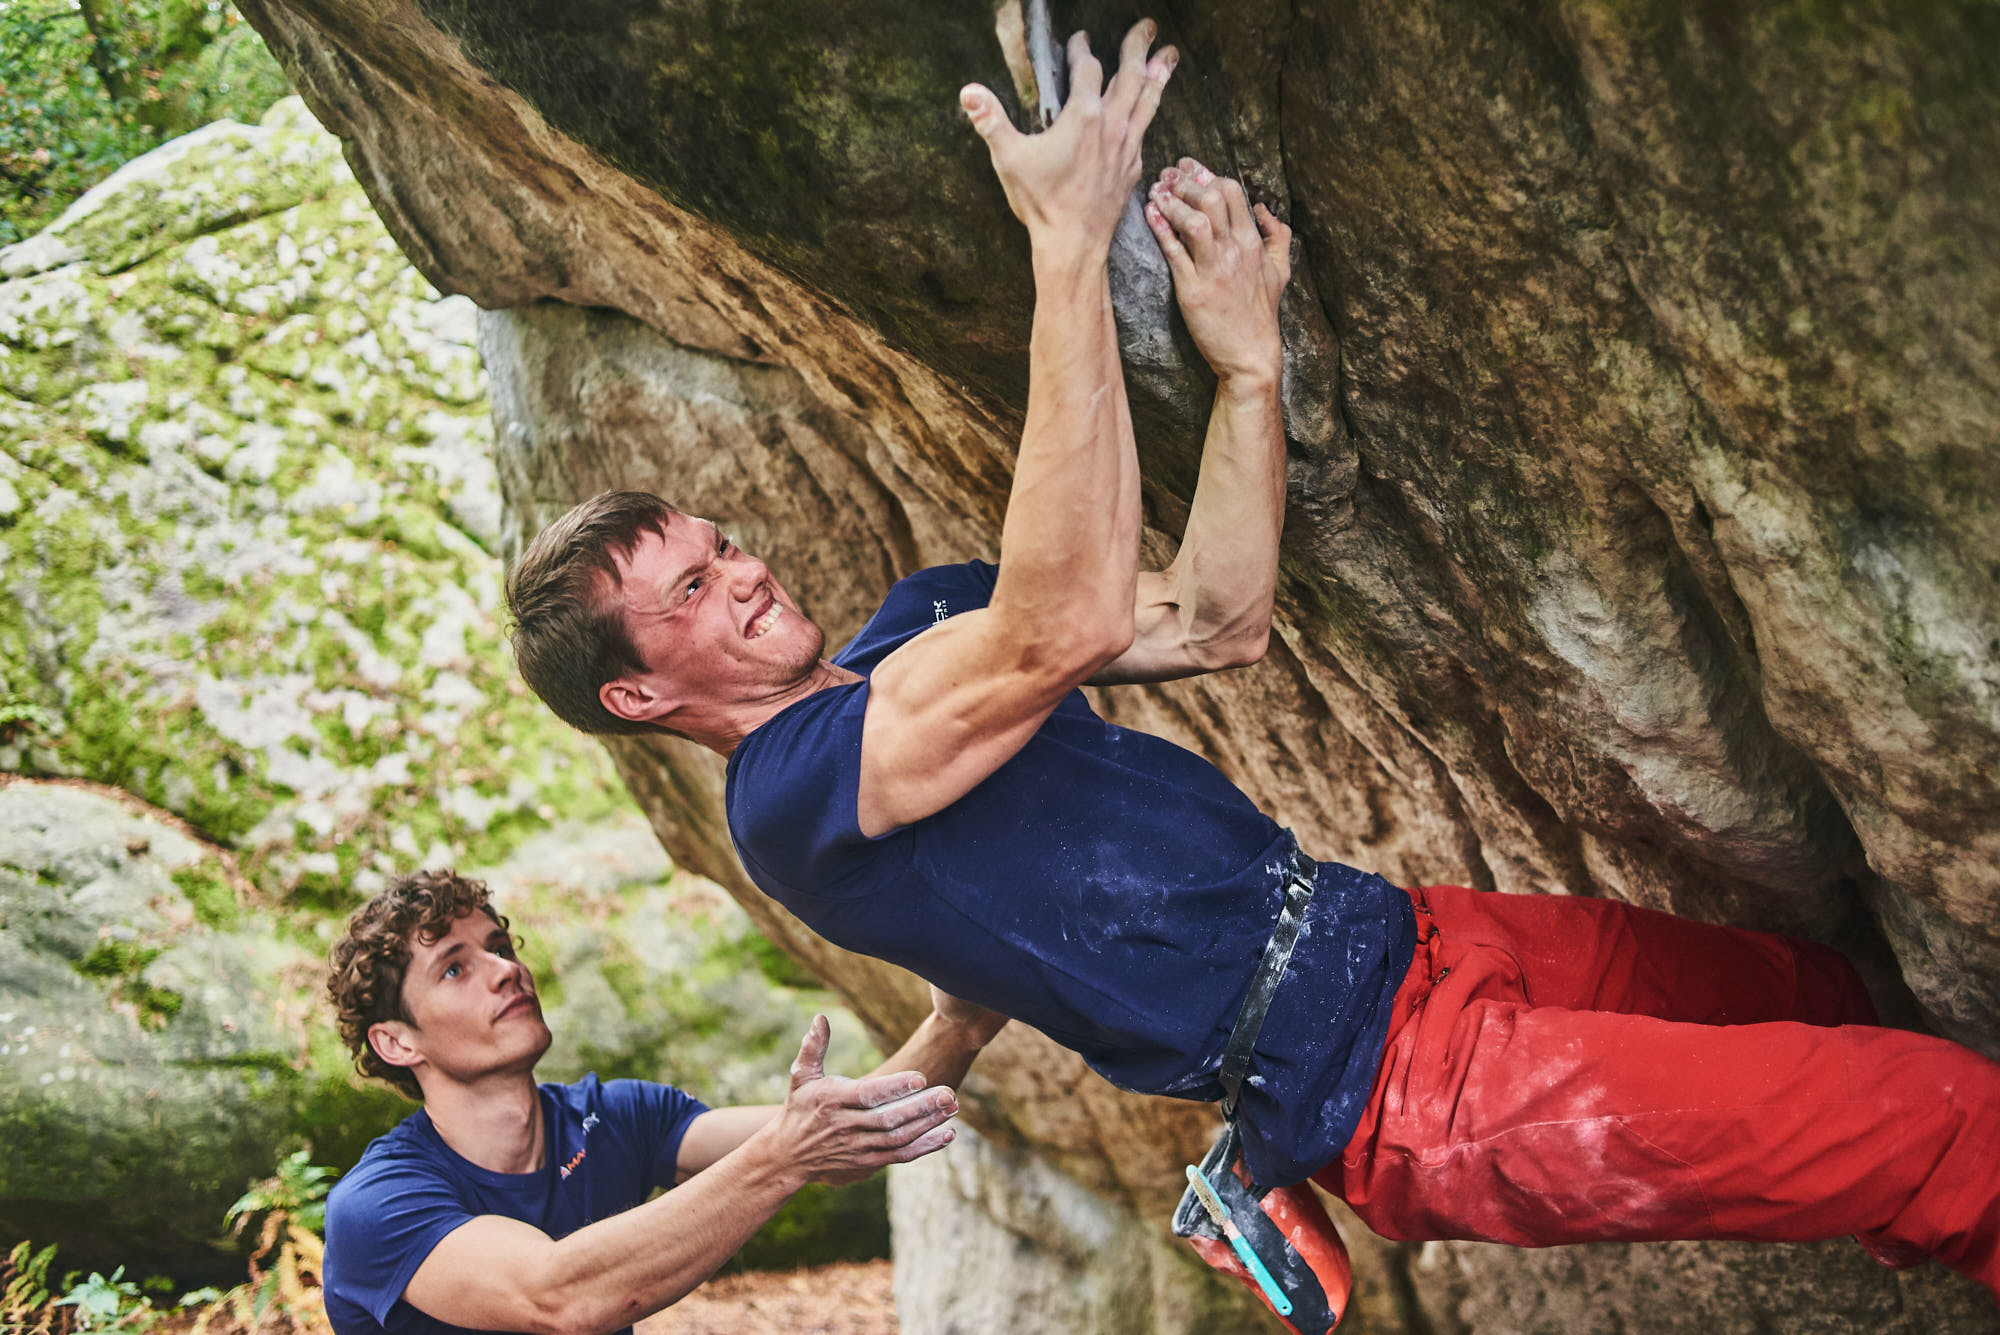 Mad Rock athlete Alexey Rubtsov climbing a boulder in Fontainebleau